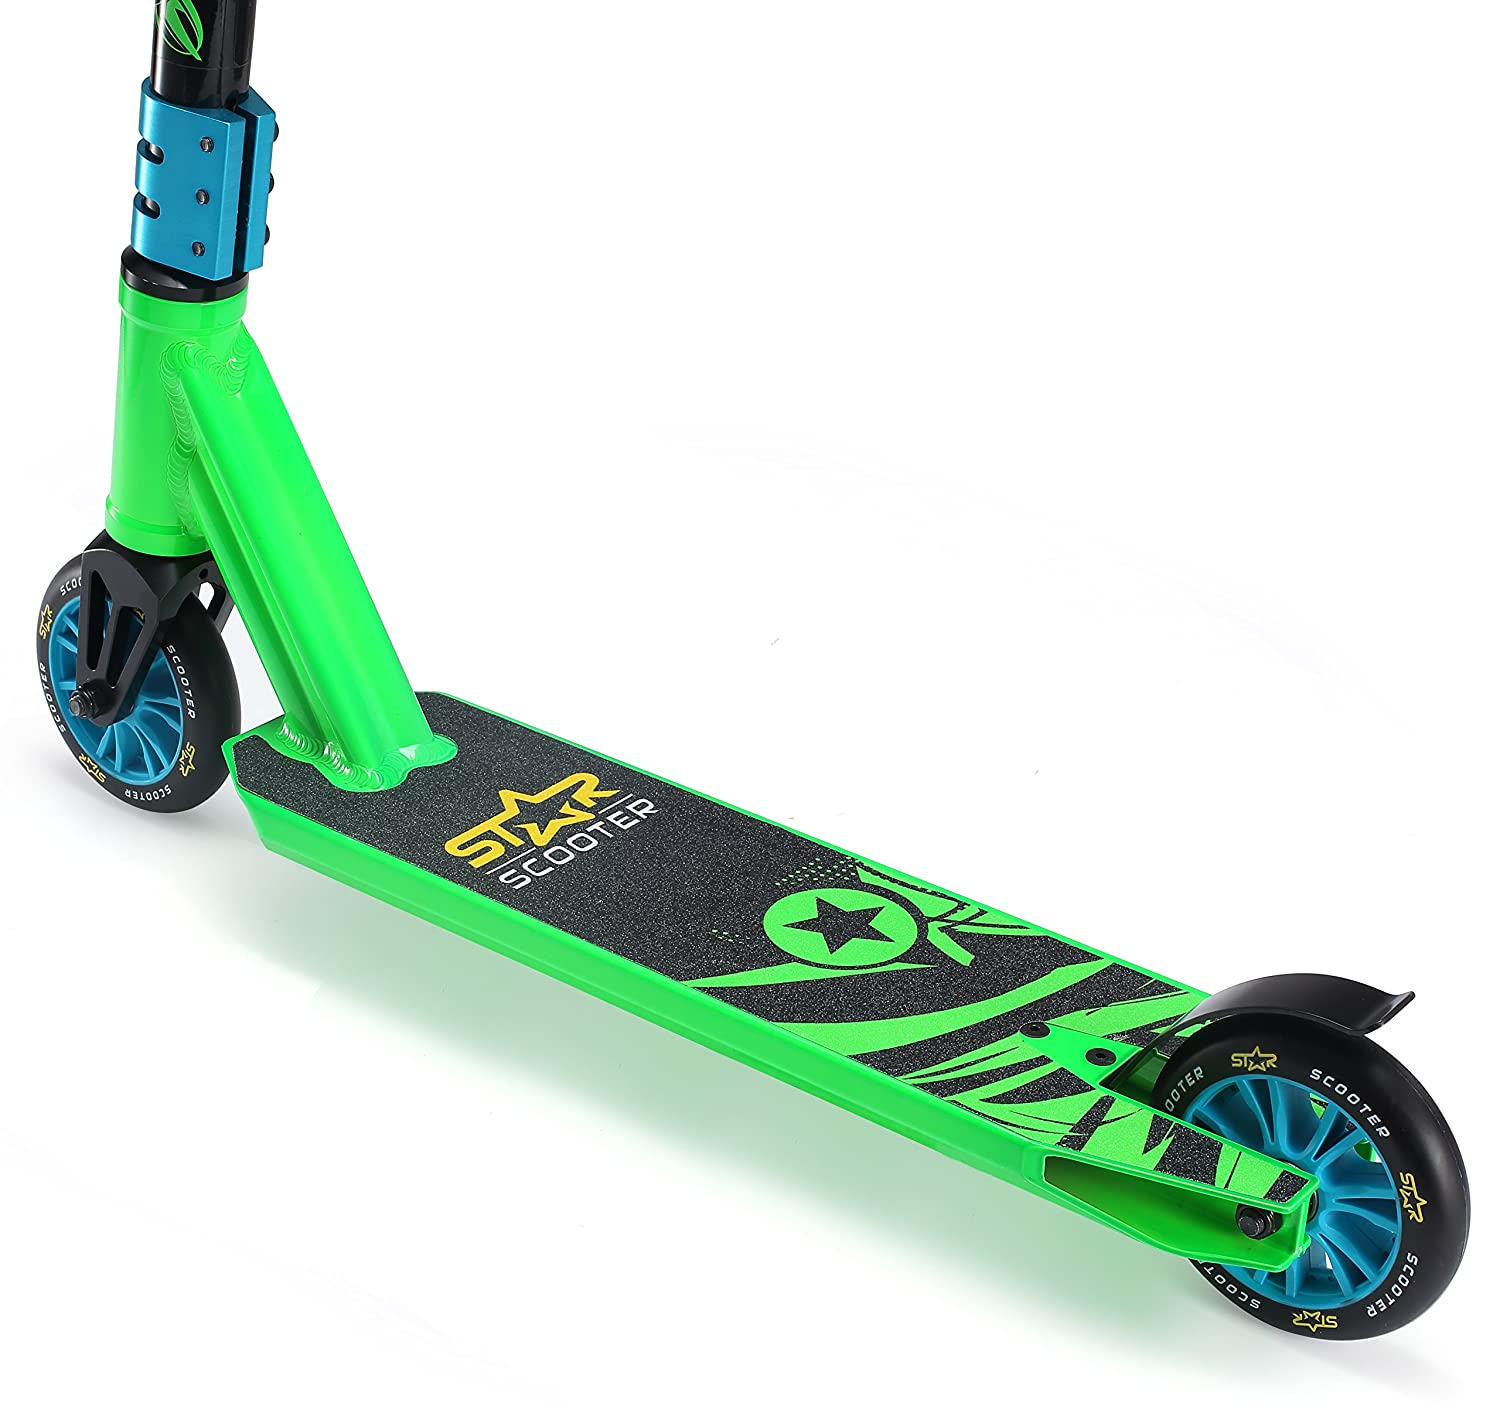 Star-Scooter Patinete Patineta Scooter Freestyle Mini Stuntscooter para niños y niñas a Partir de 5 años | 110 mm Edición Mini